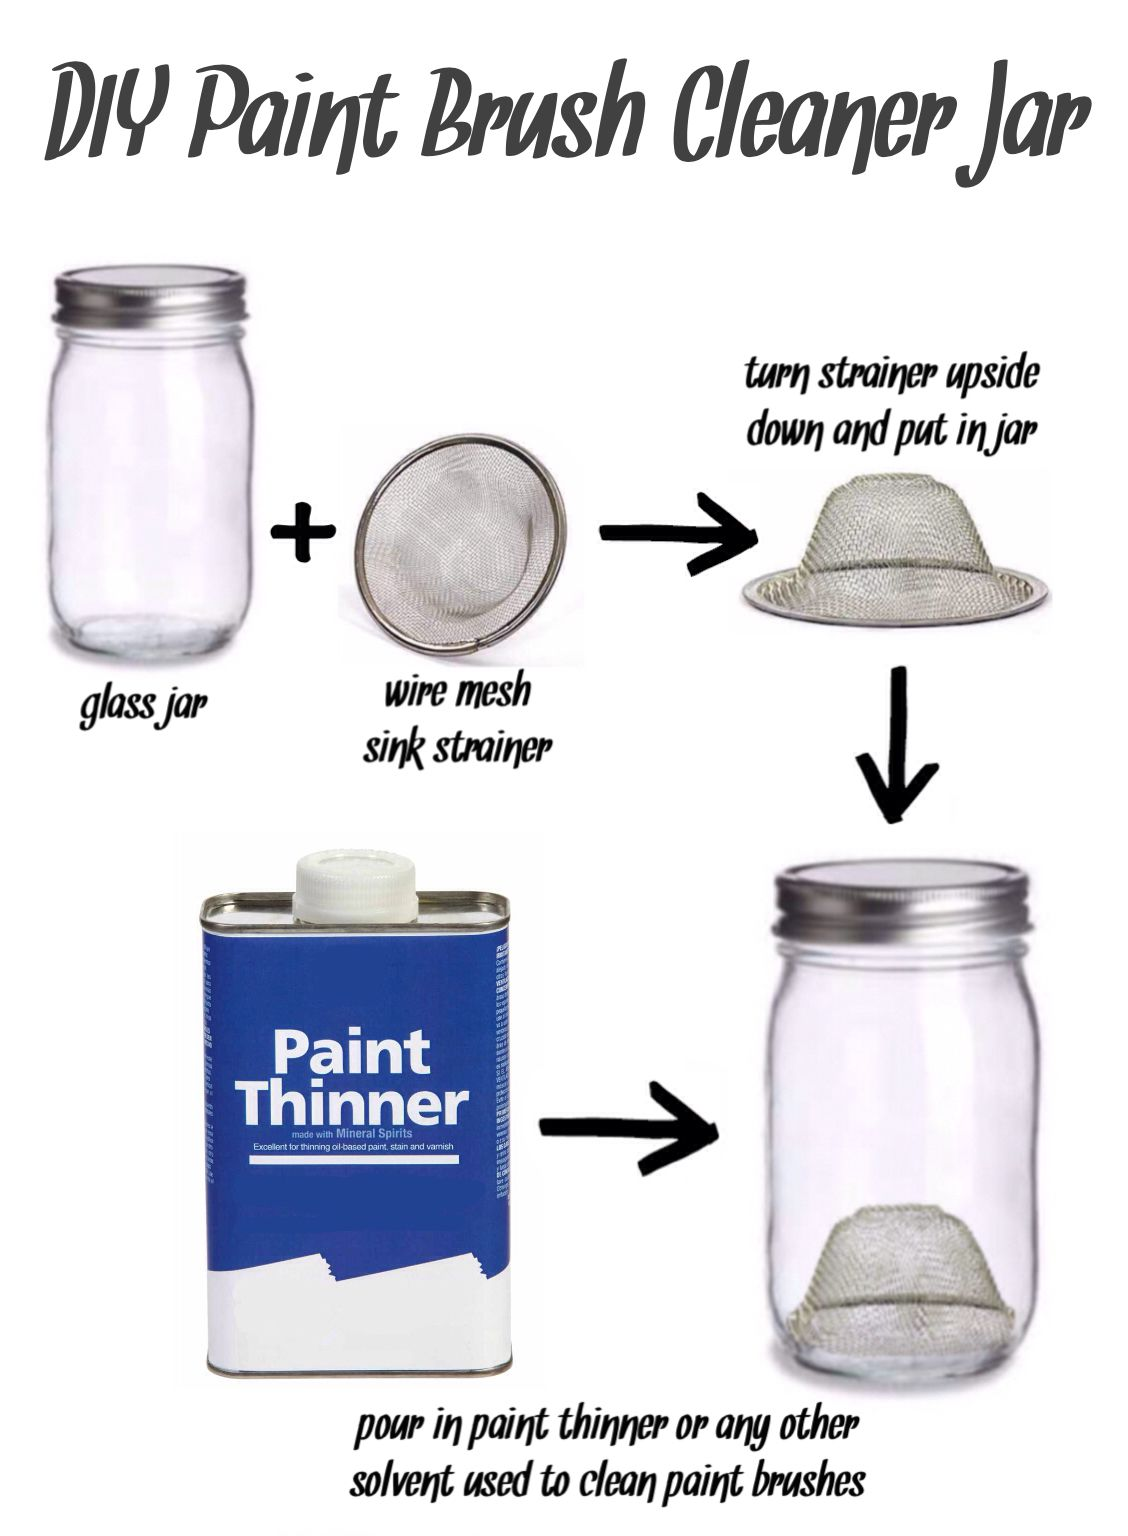 Diy Paint Brush Cleaner Jar Cleaning Paint Brushes Oil